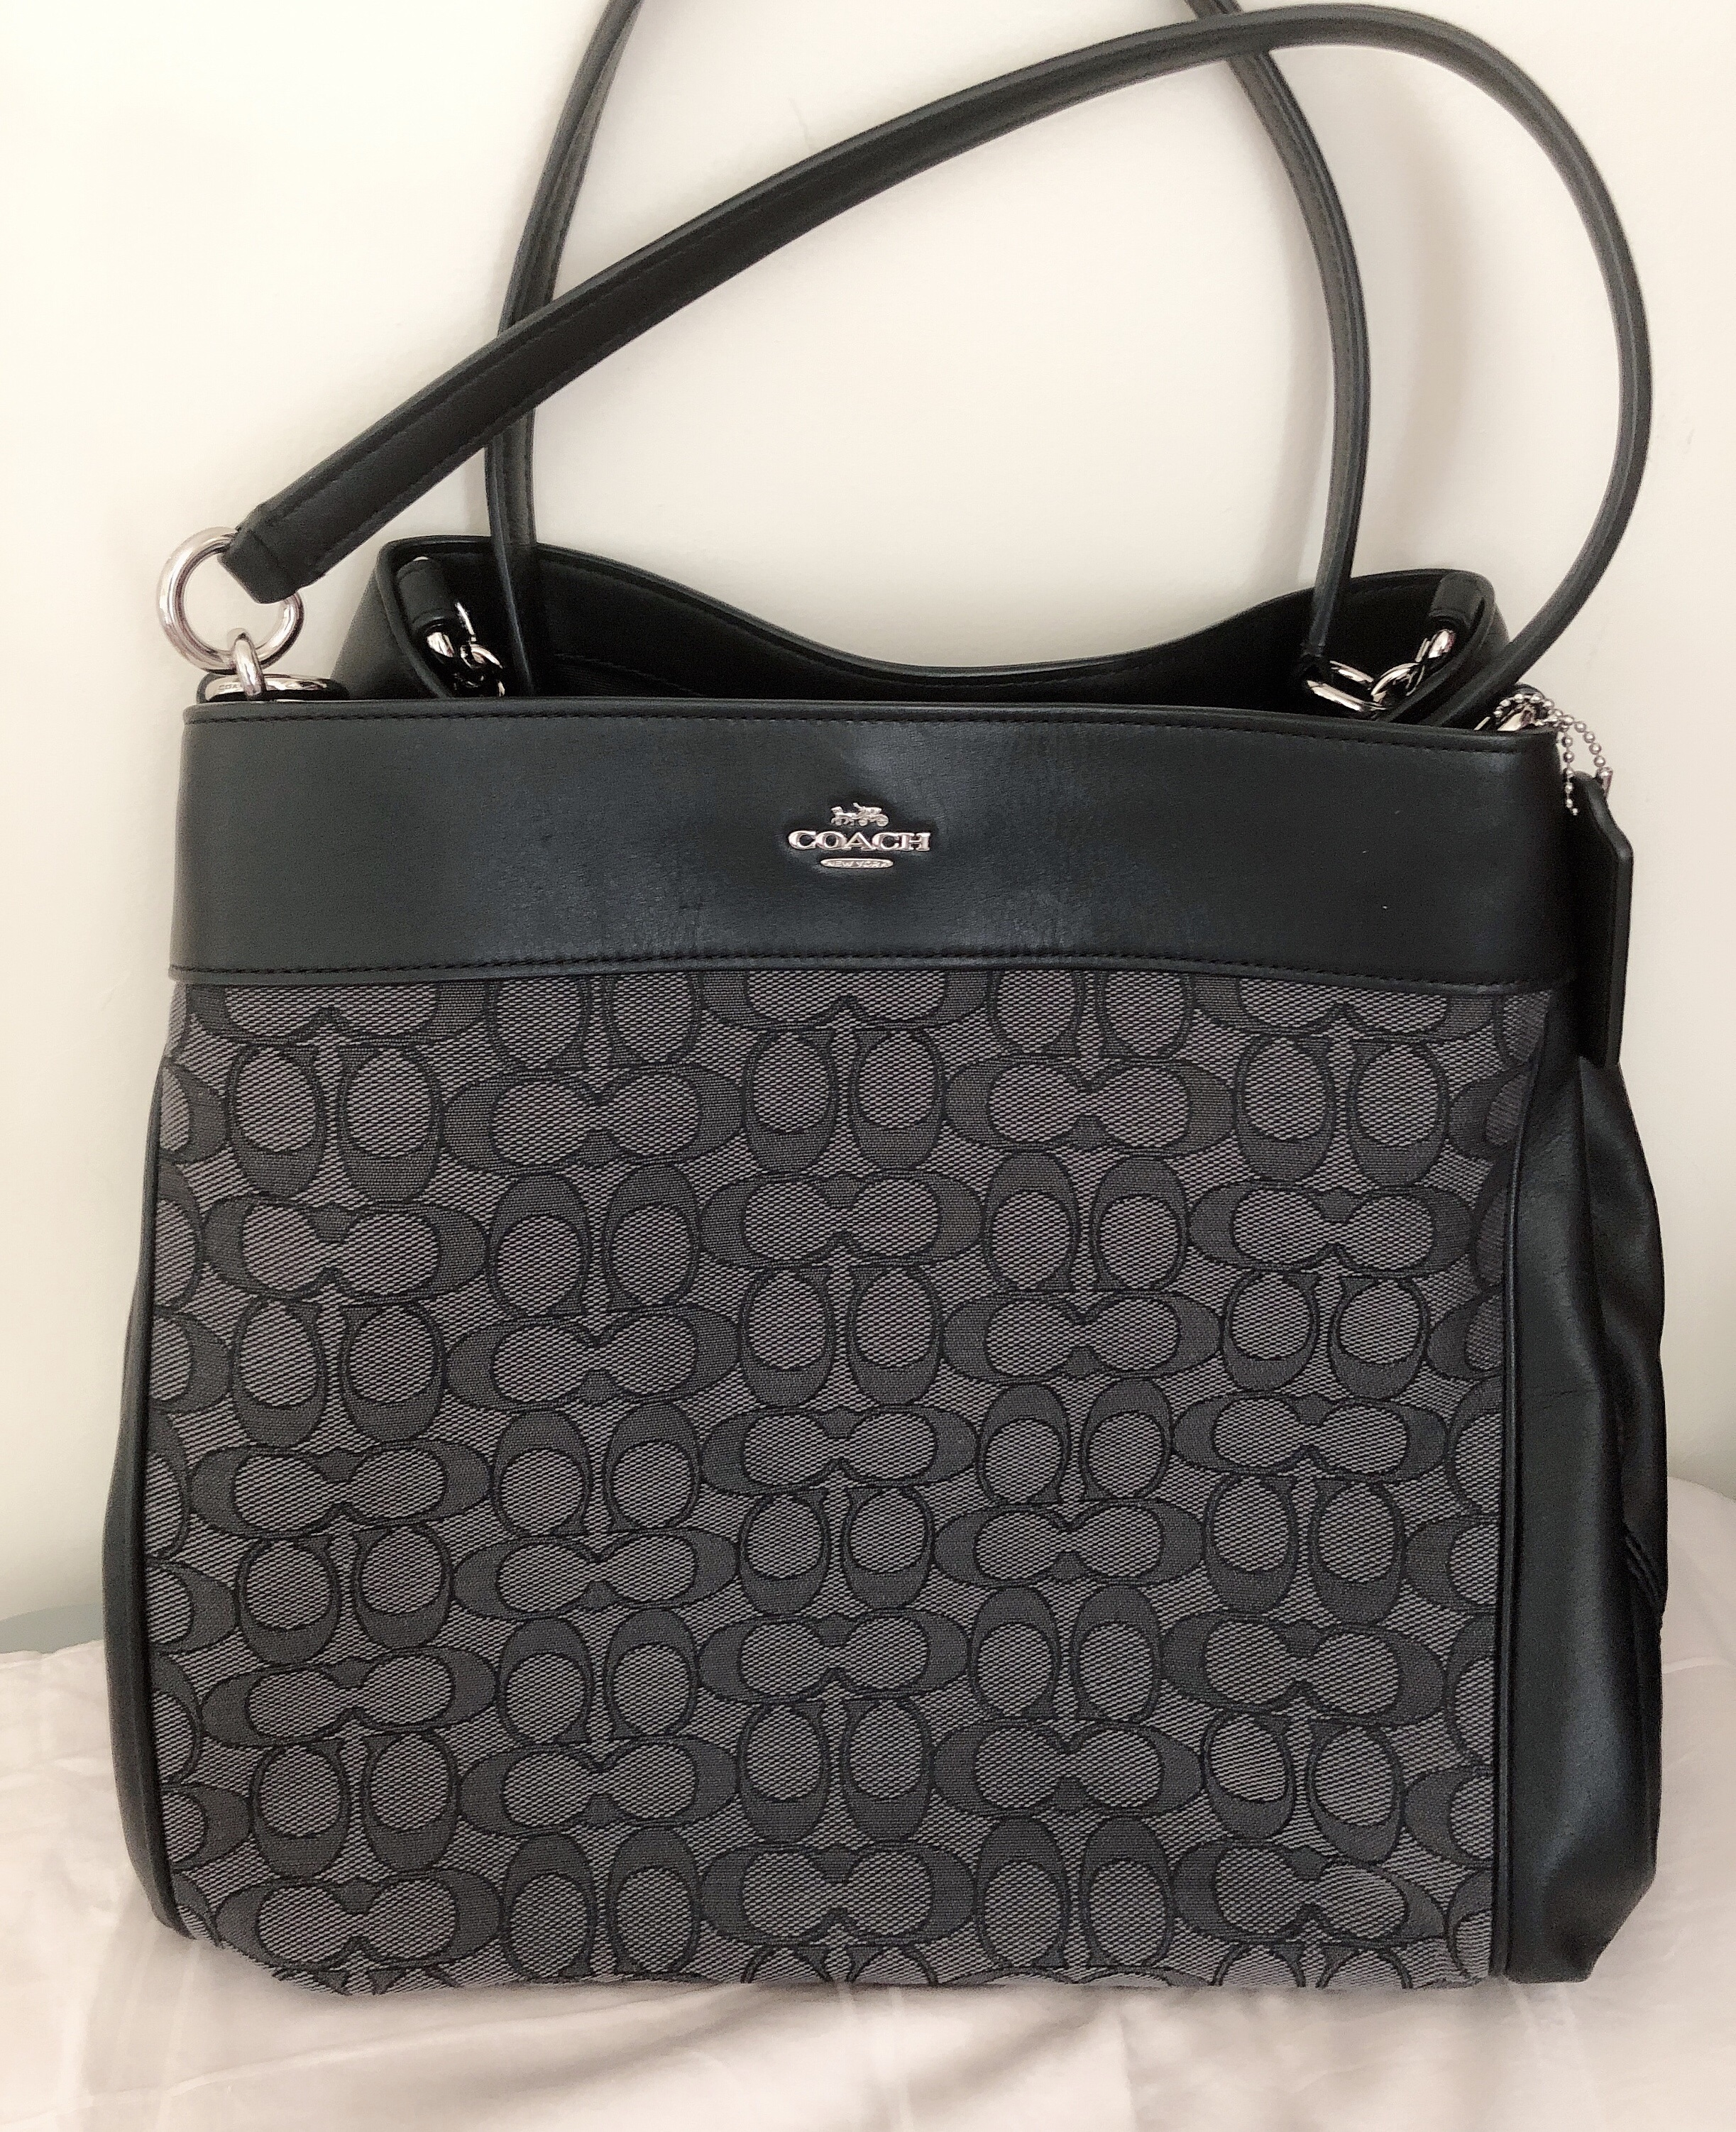 3abaaa5a203d Coach bag Measurements   11.5(H)x 13(L) x4(W) inch Condition   10 10 brand  new Color   grey black Selling Price   SGD300   RM900 Contact via WhatsApp    + ...